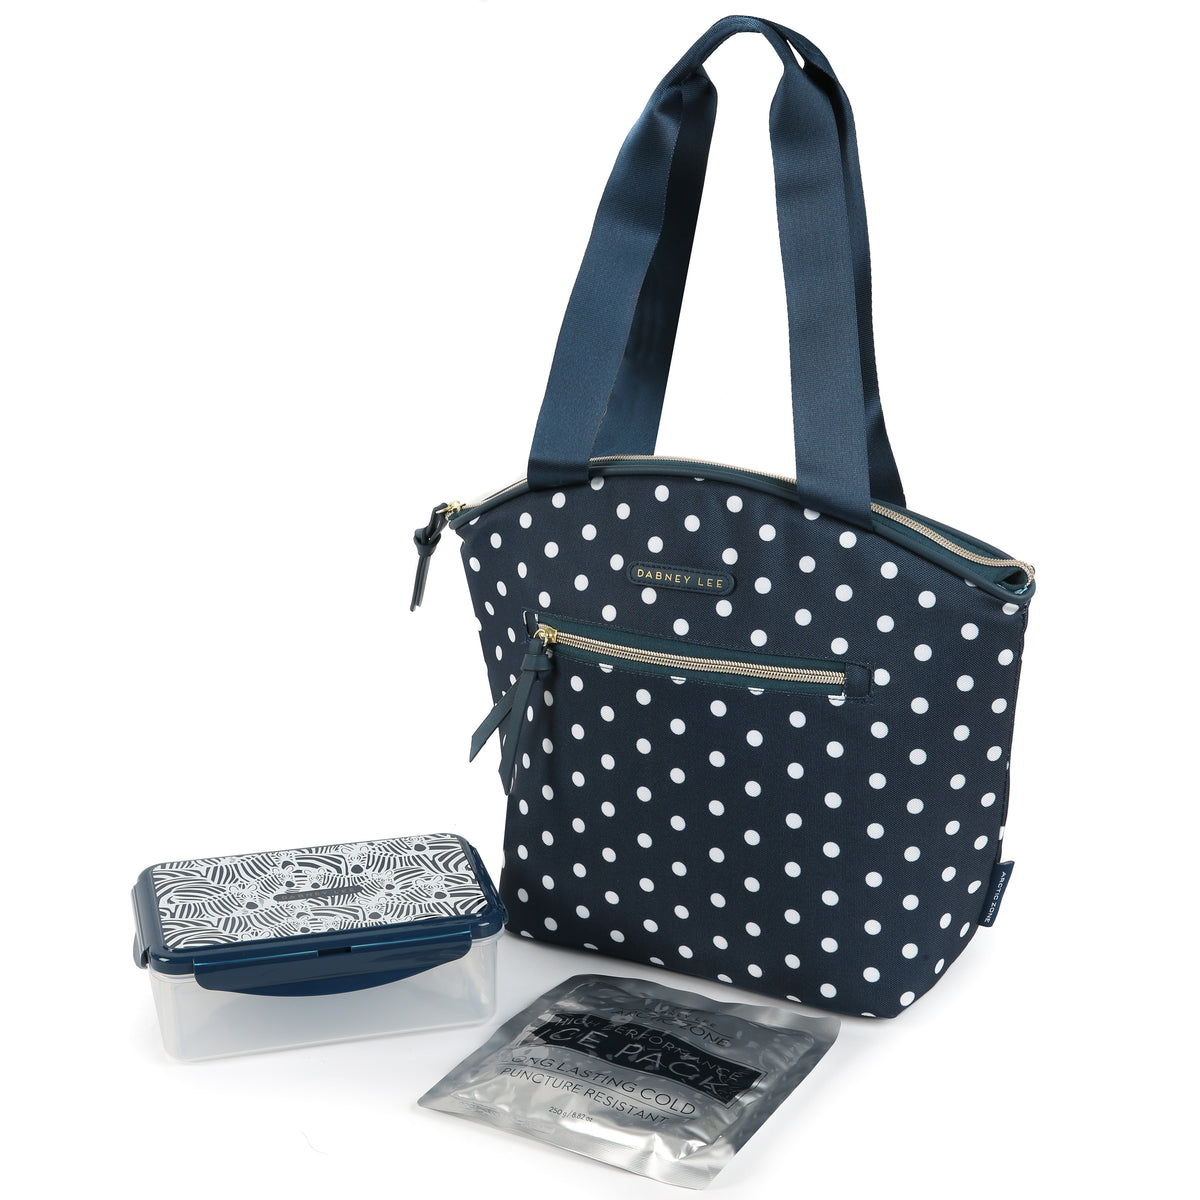 Arctic Zone® Dabney Lee Soft Tote - Dottie Navy - Front, closed with container and ice pack